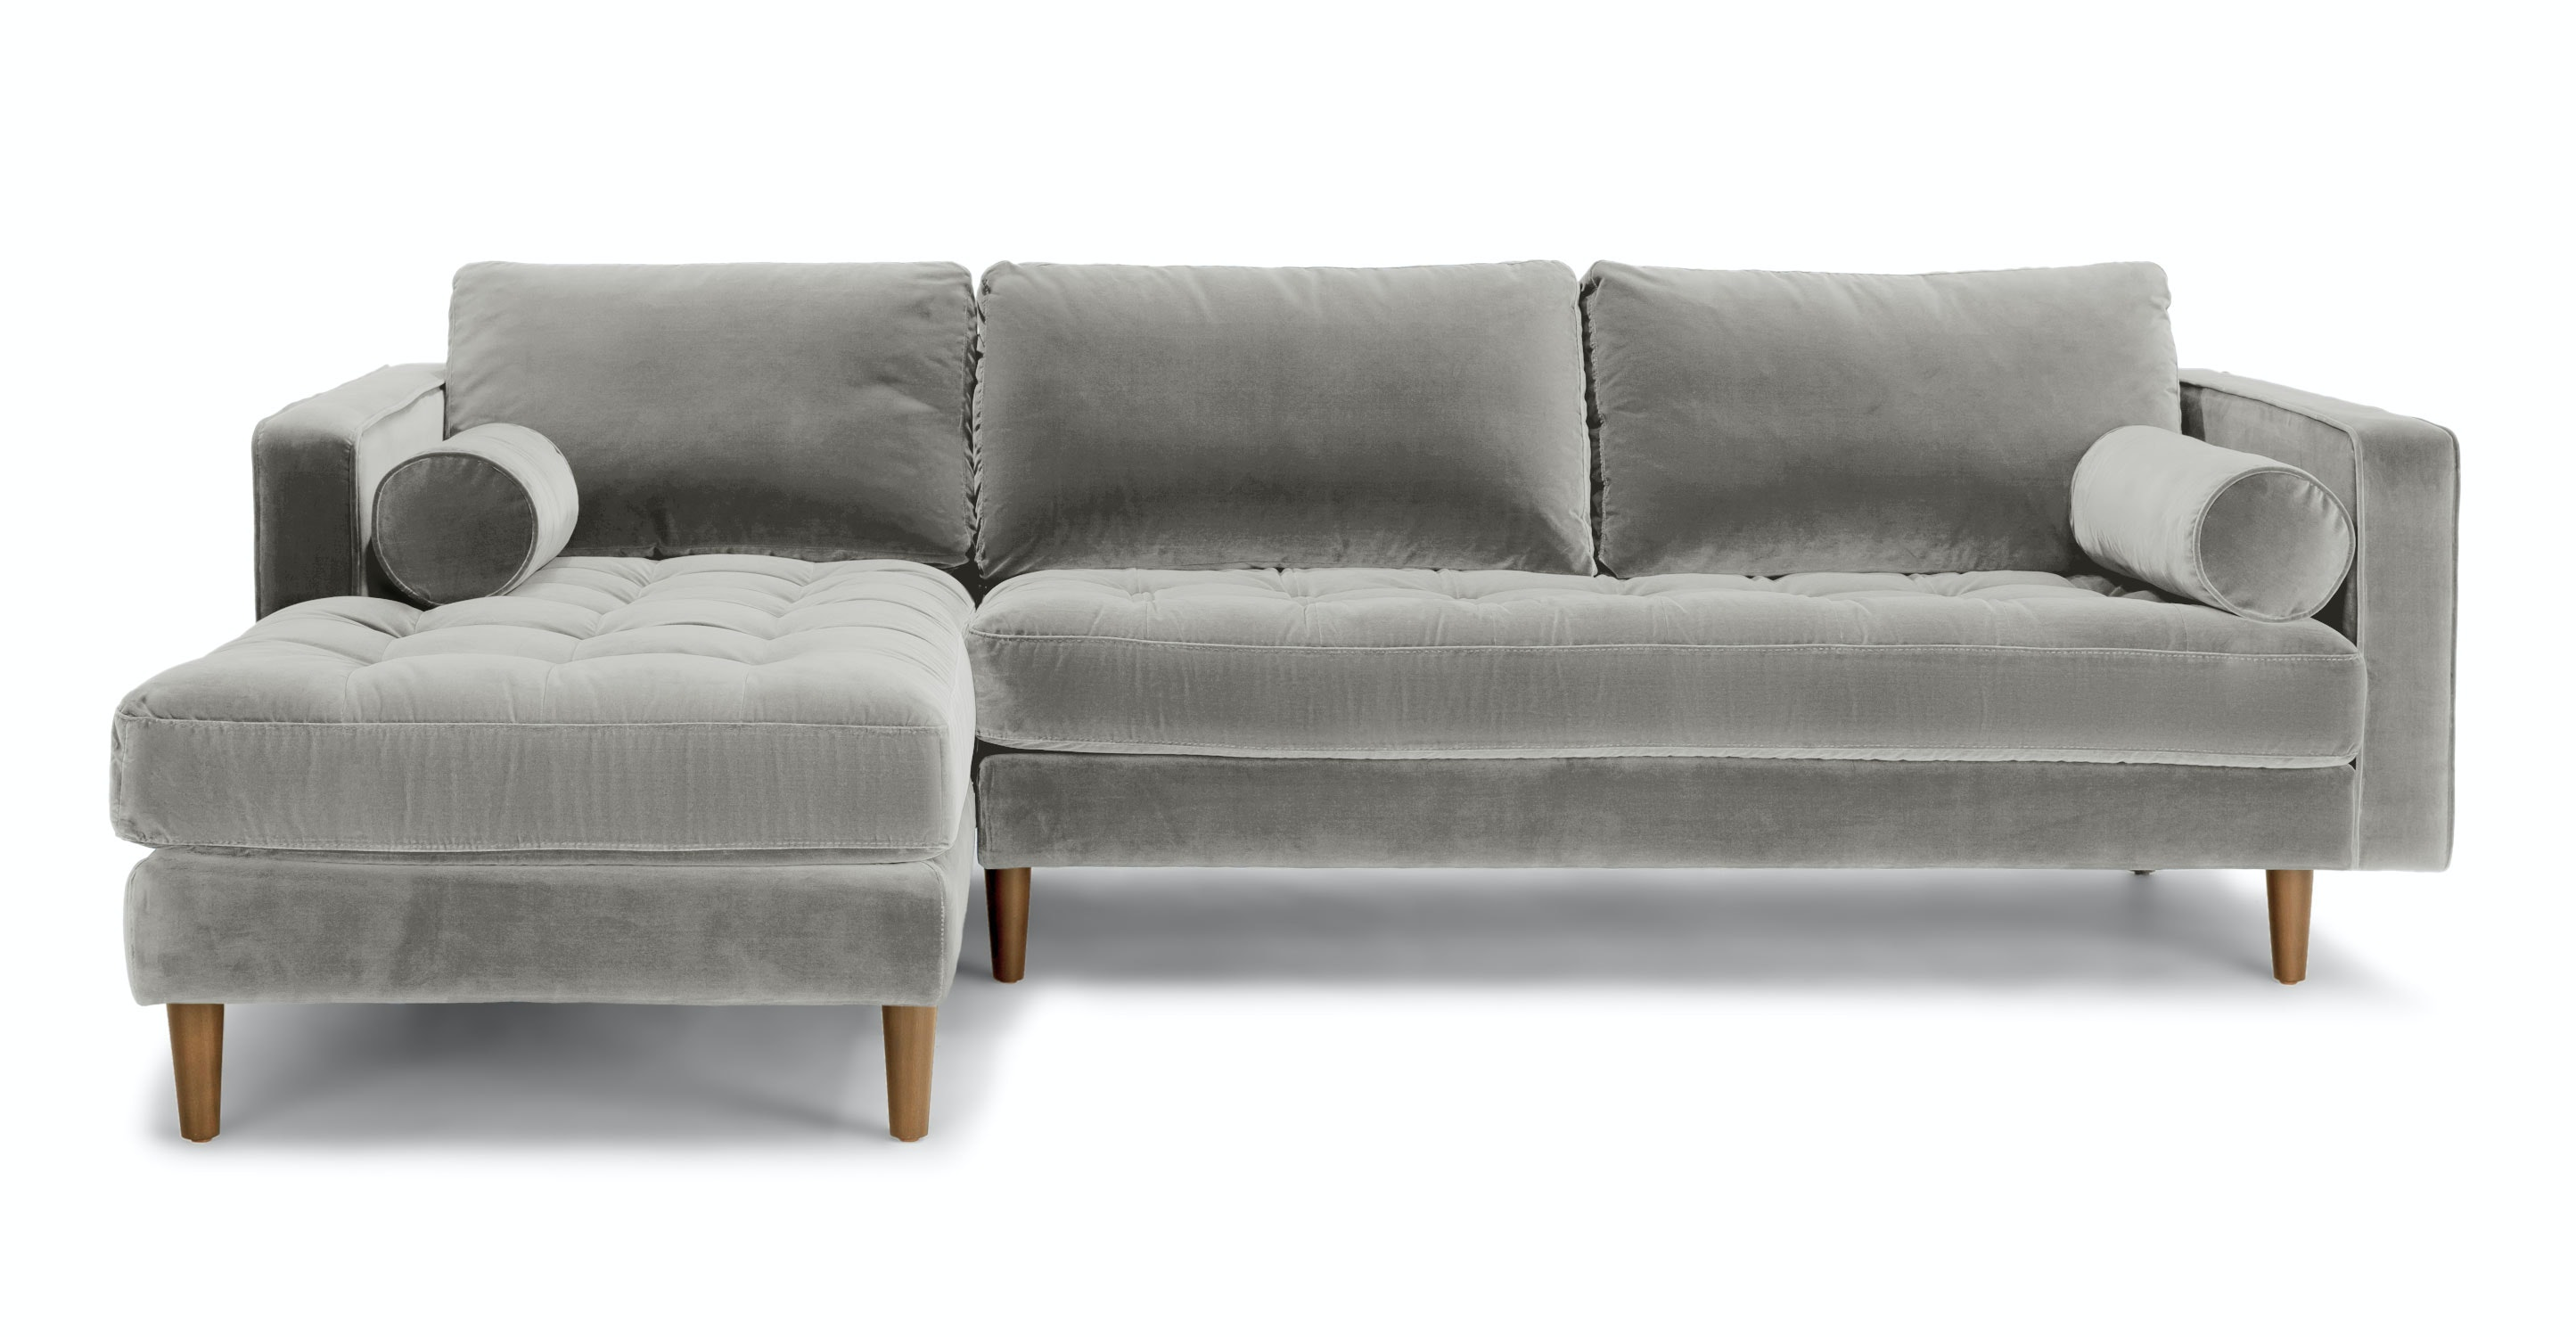 Sven Intuition Gray Left Sectional Sofa   Sectionals   Article | Modern,  Mid Century And Scandinavian Furniture